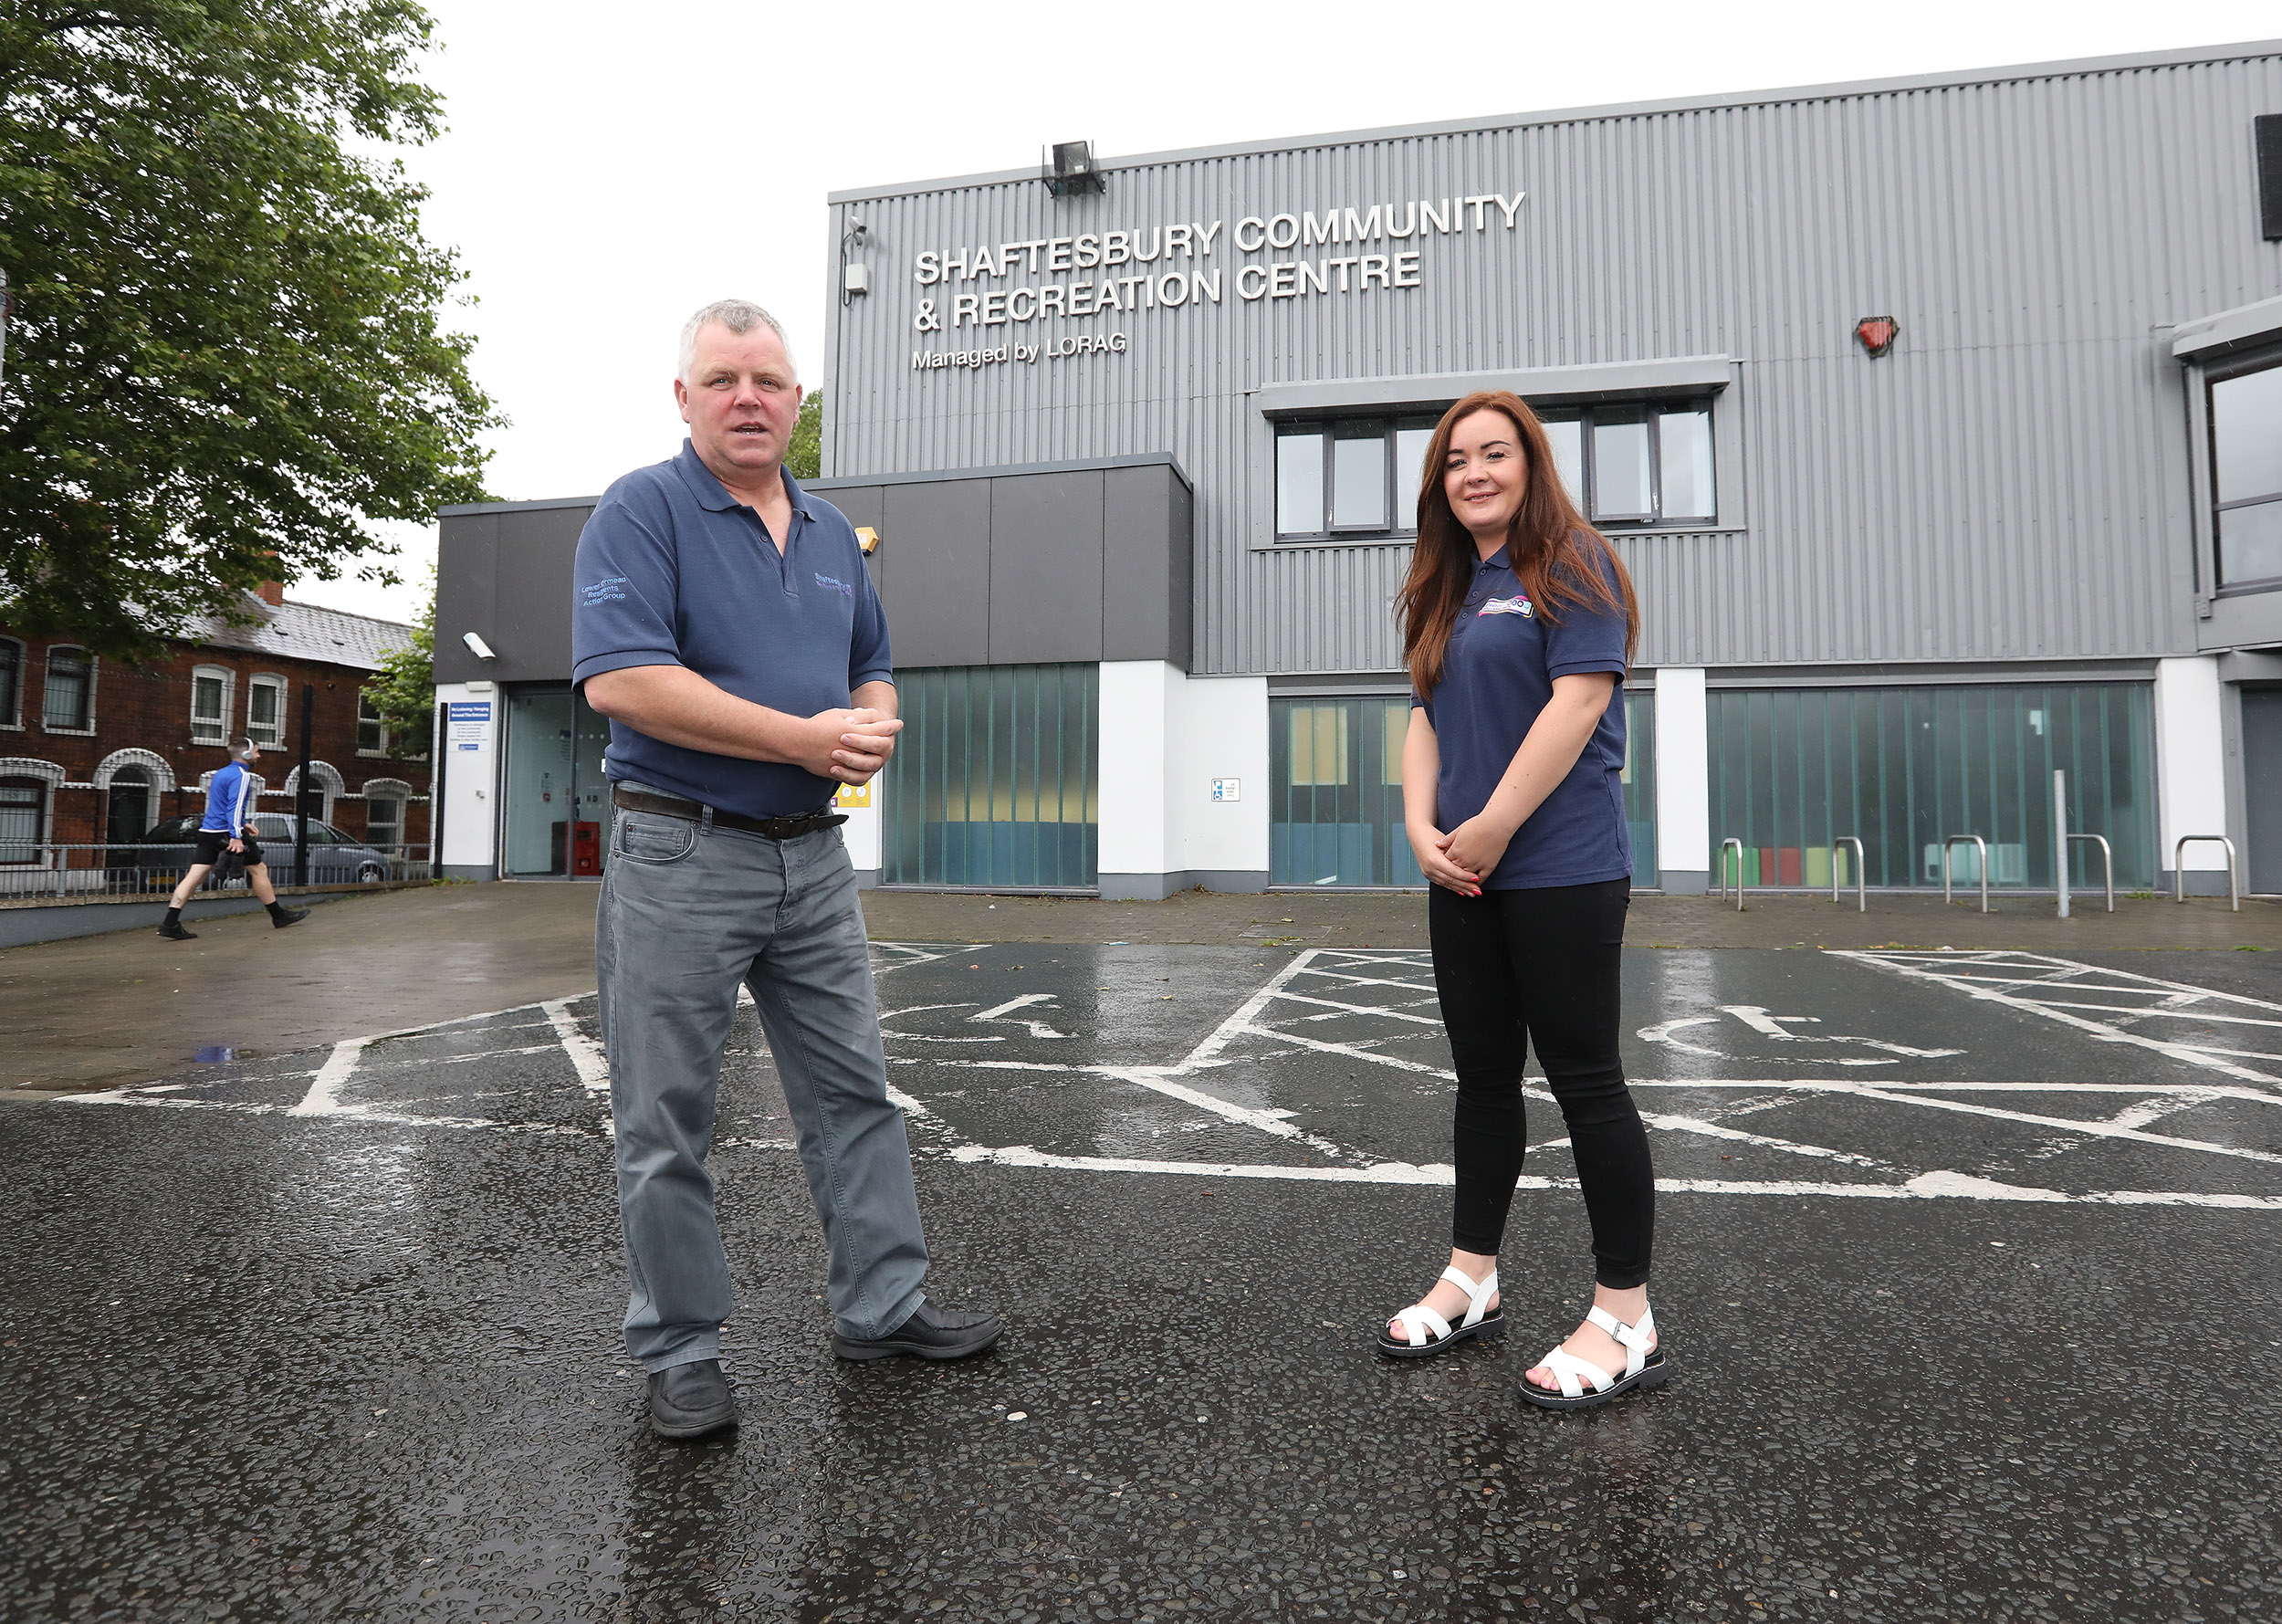 PLAY YOUR PART: Gerard Rice and Natasha Brennan say it\'s key to keep users safe from Covid as centre reopens.